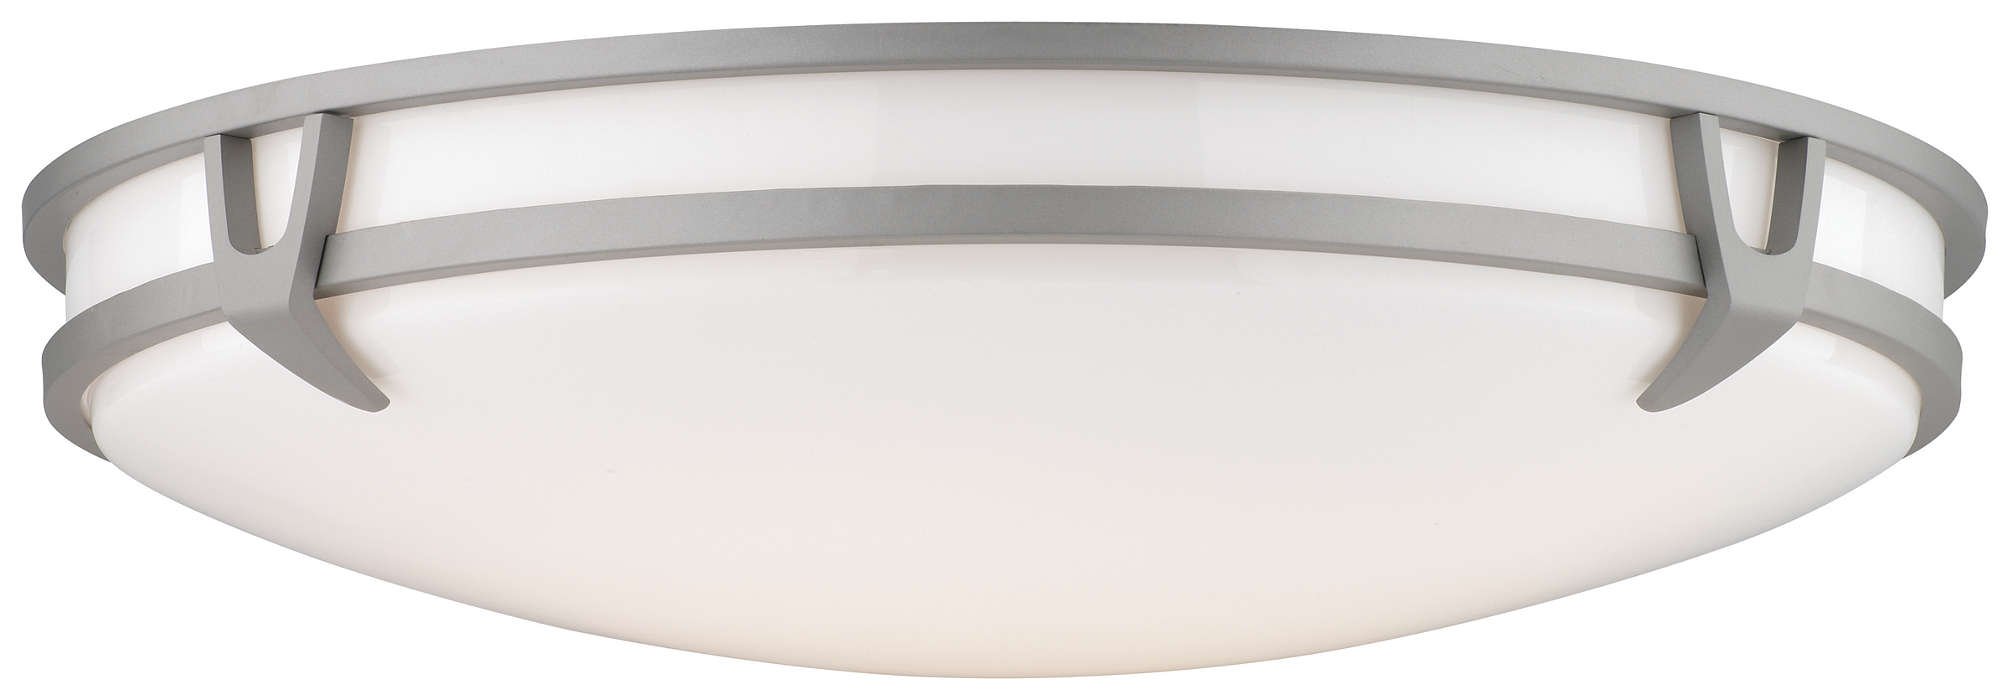 Plaza 2-light Ceiling in Glacier Silver finish